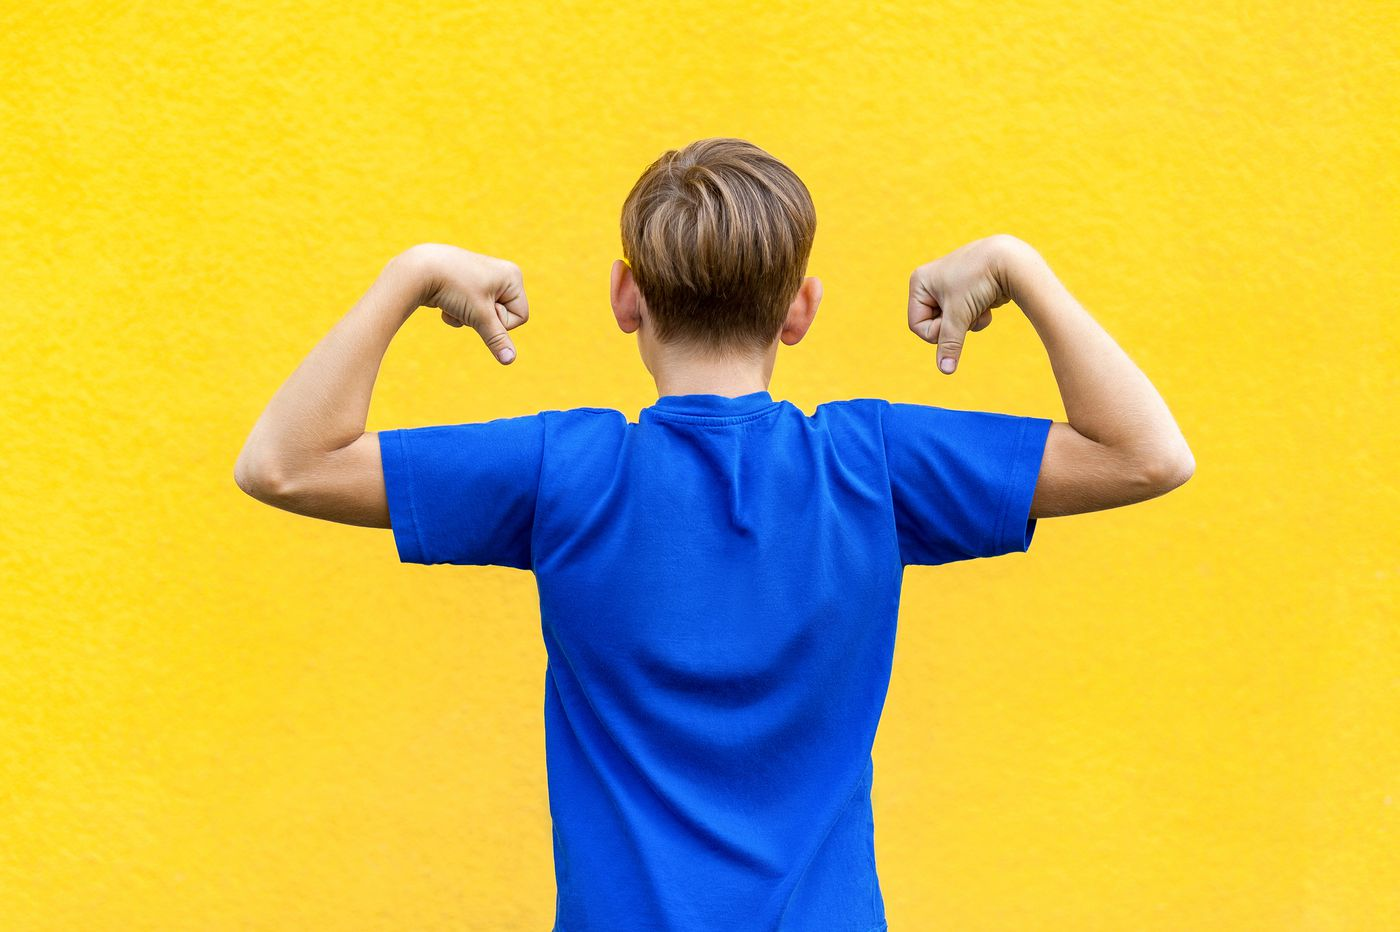 The body dysmorphic disorder that's affecting teen boys, and what to do about it